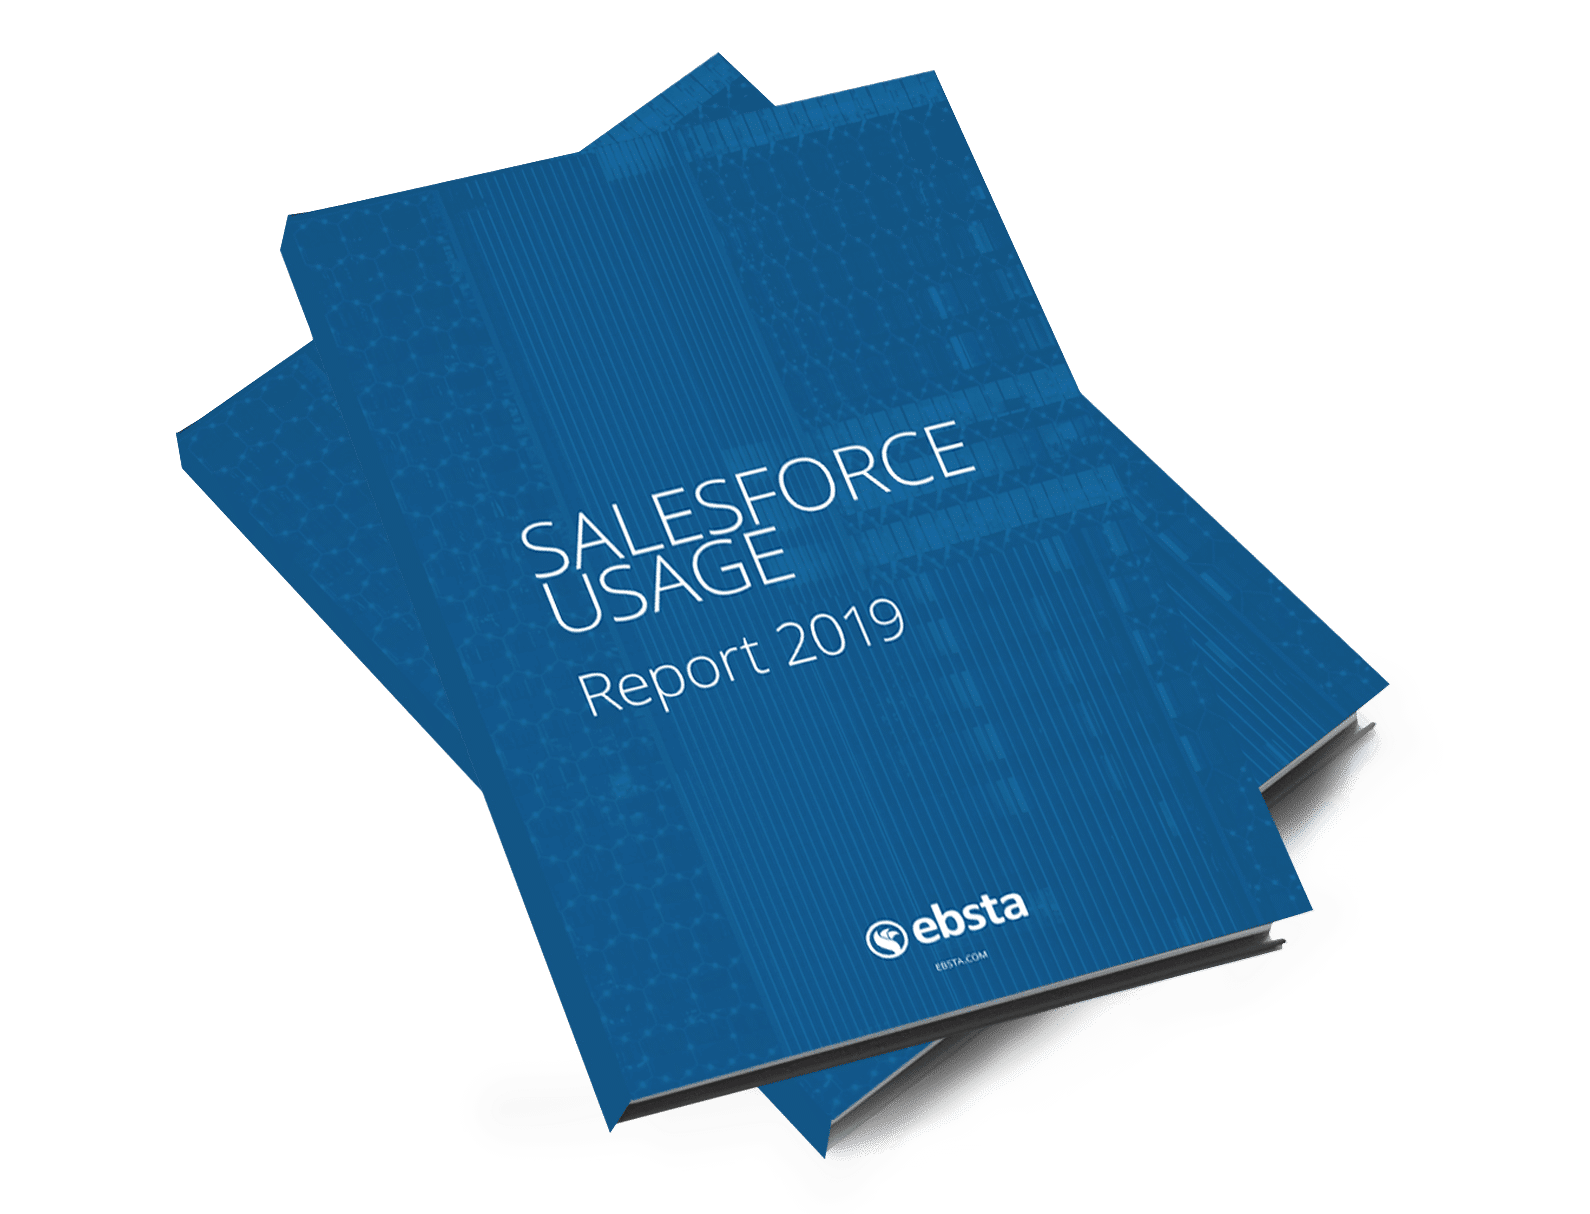 Ebsta Launches the 2019 Salesforce Usage Report